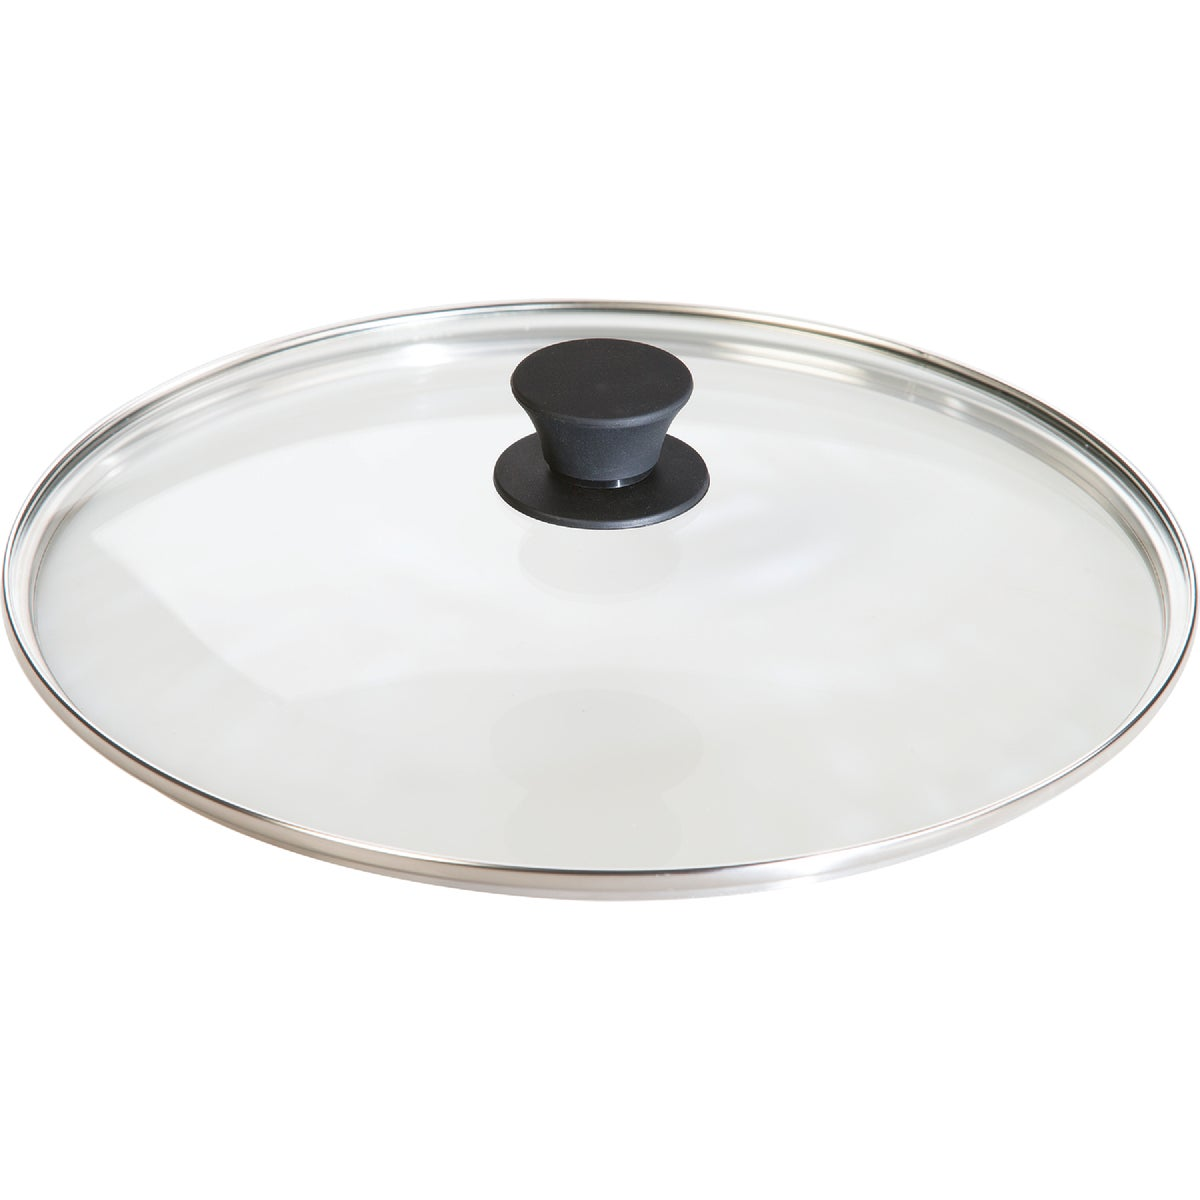 """12"""" GLASS LID - GC12 by Lodge Mfg Co"""